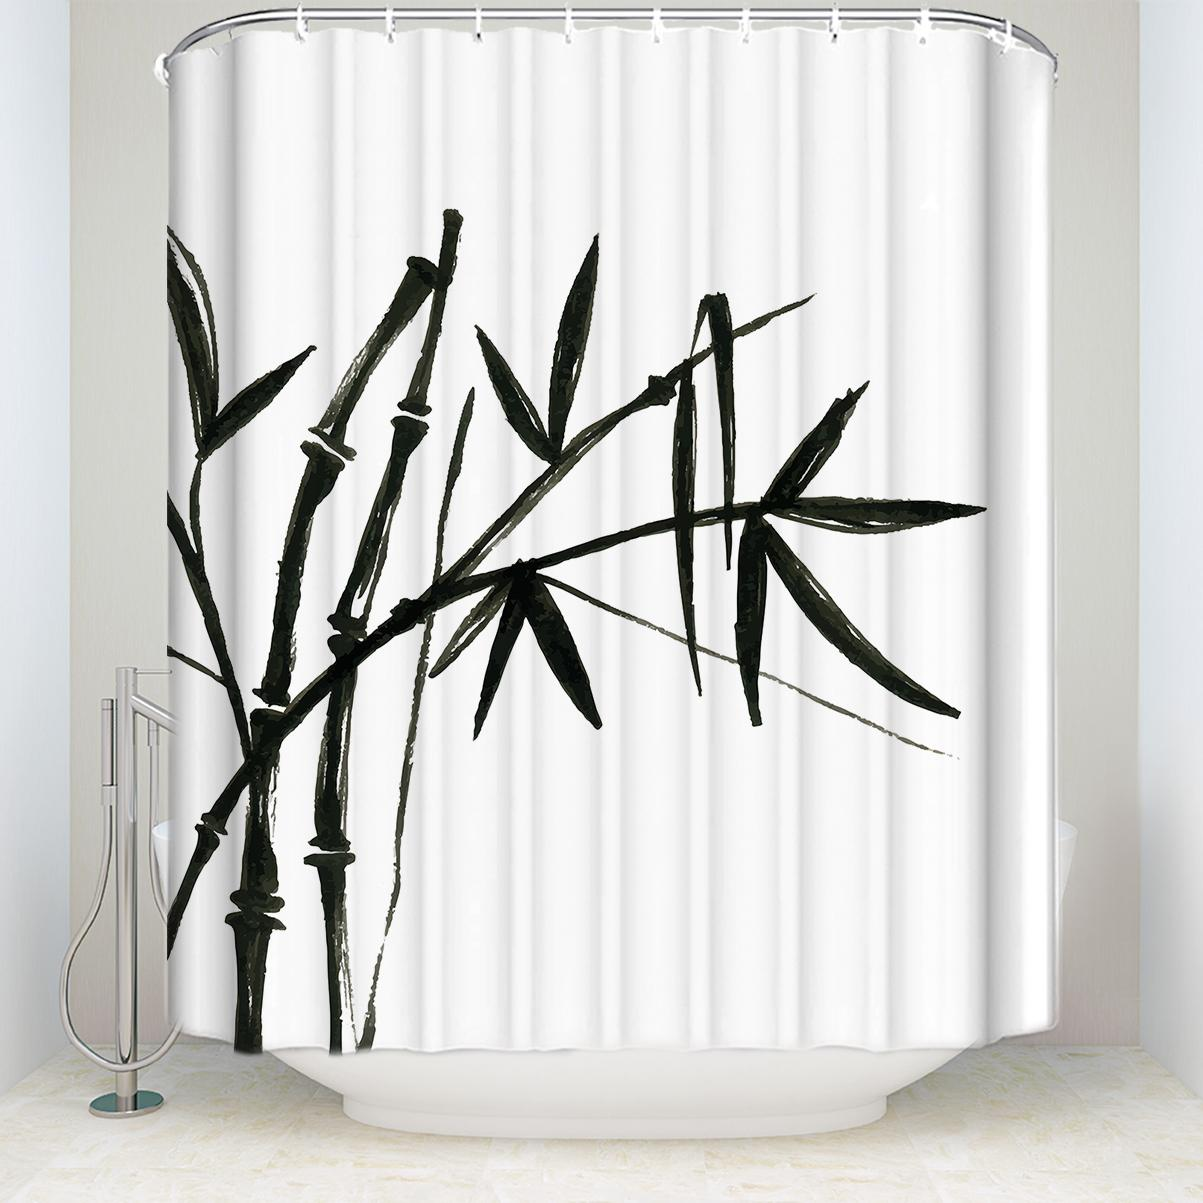 2019 Custom Waterproof Bathroom Chinese Ink Painting Bamboo Print Shower Curtain Polyester Fabric Black White Bathroom Curtain From Waxer 30 51